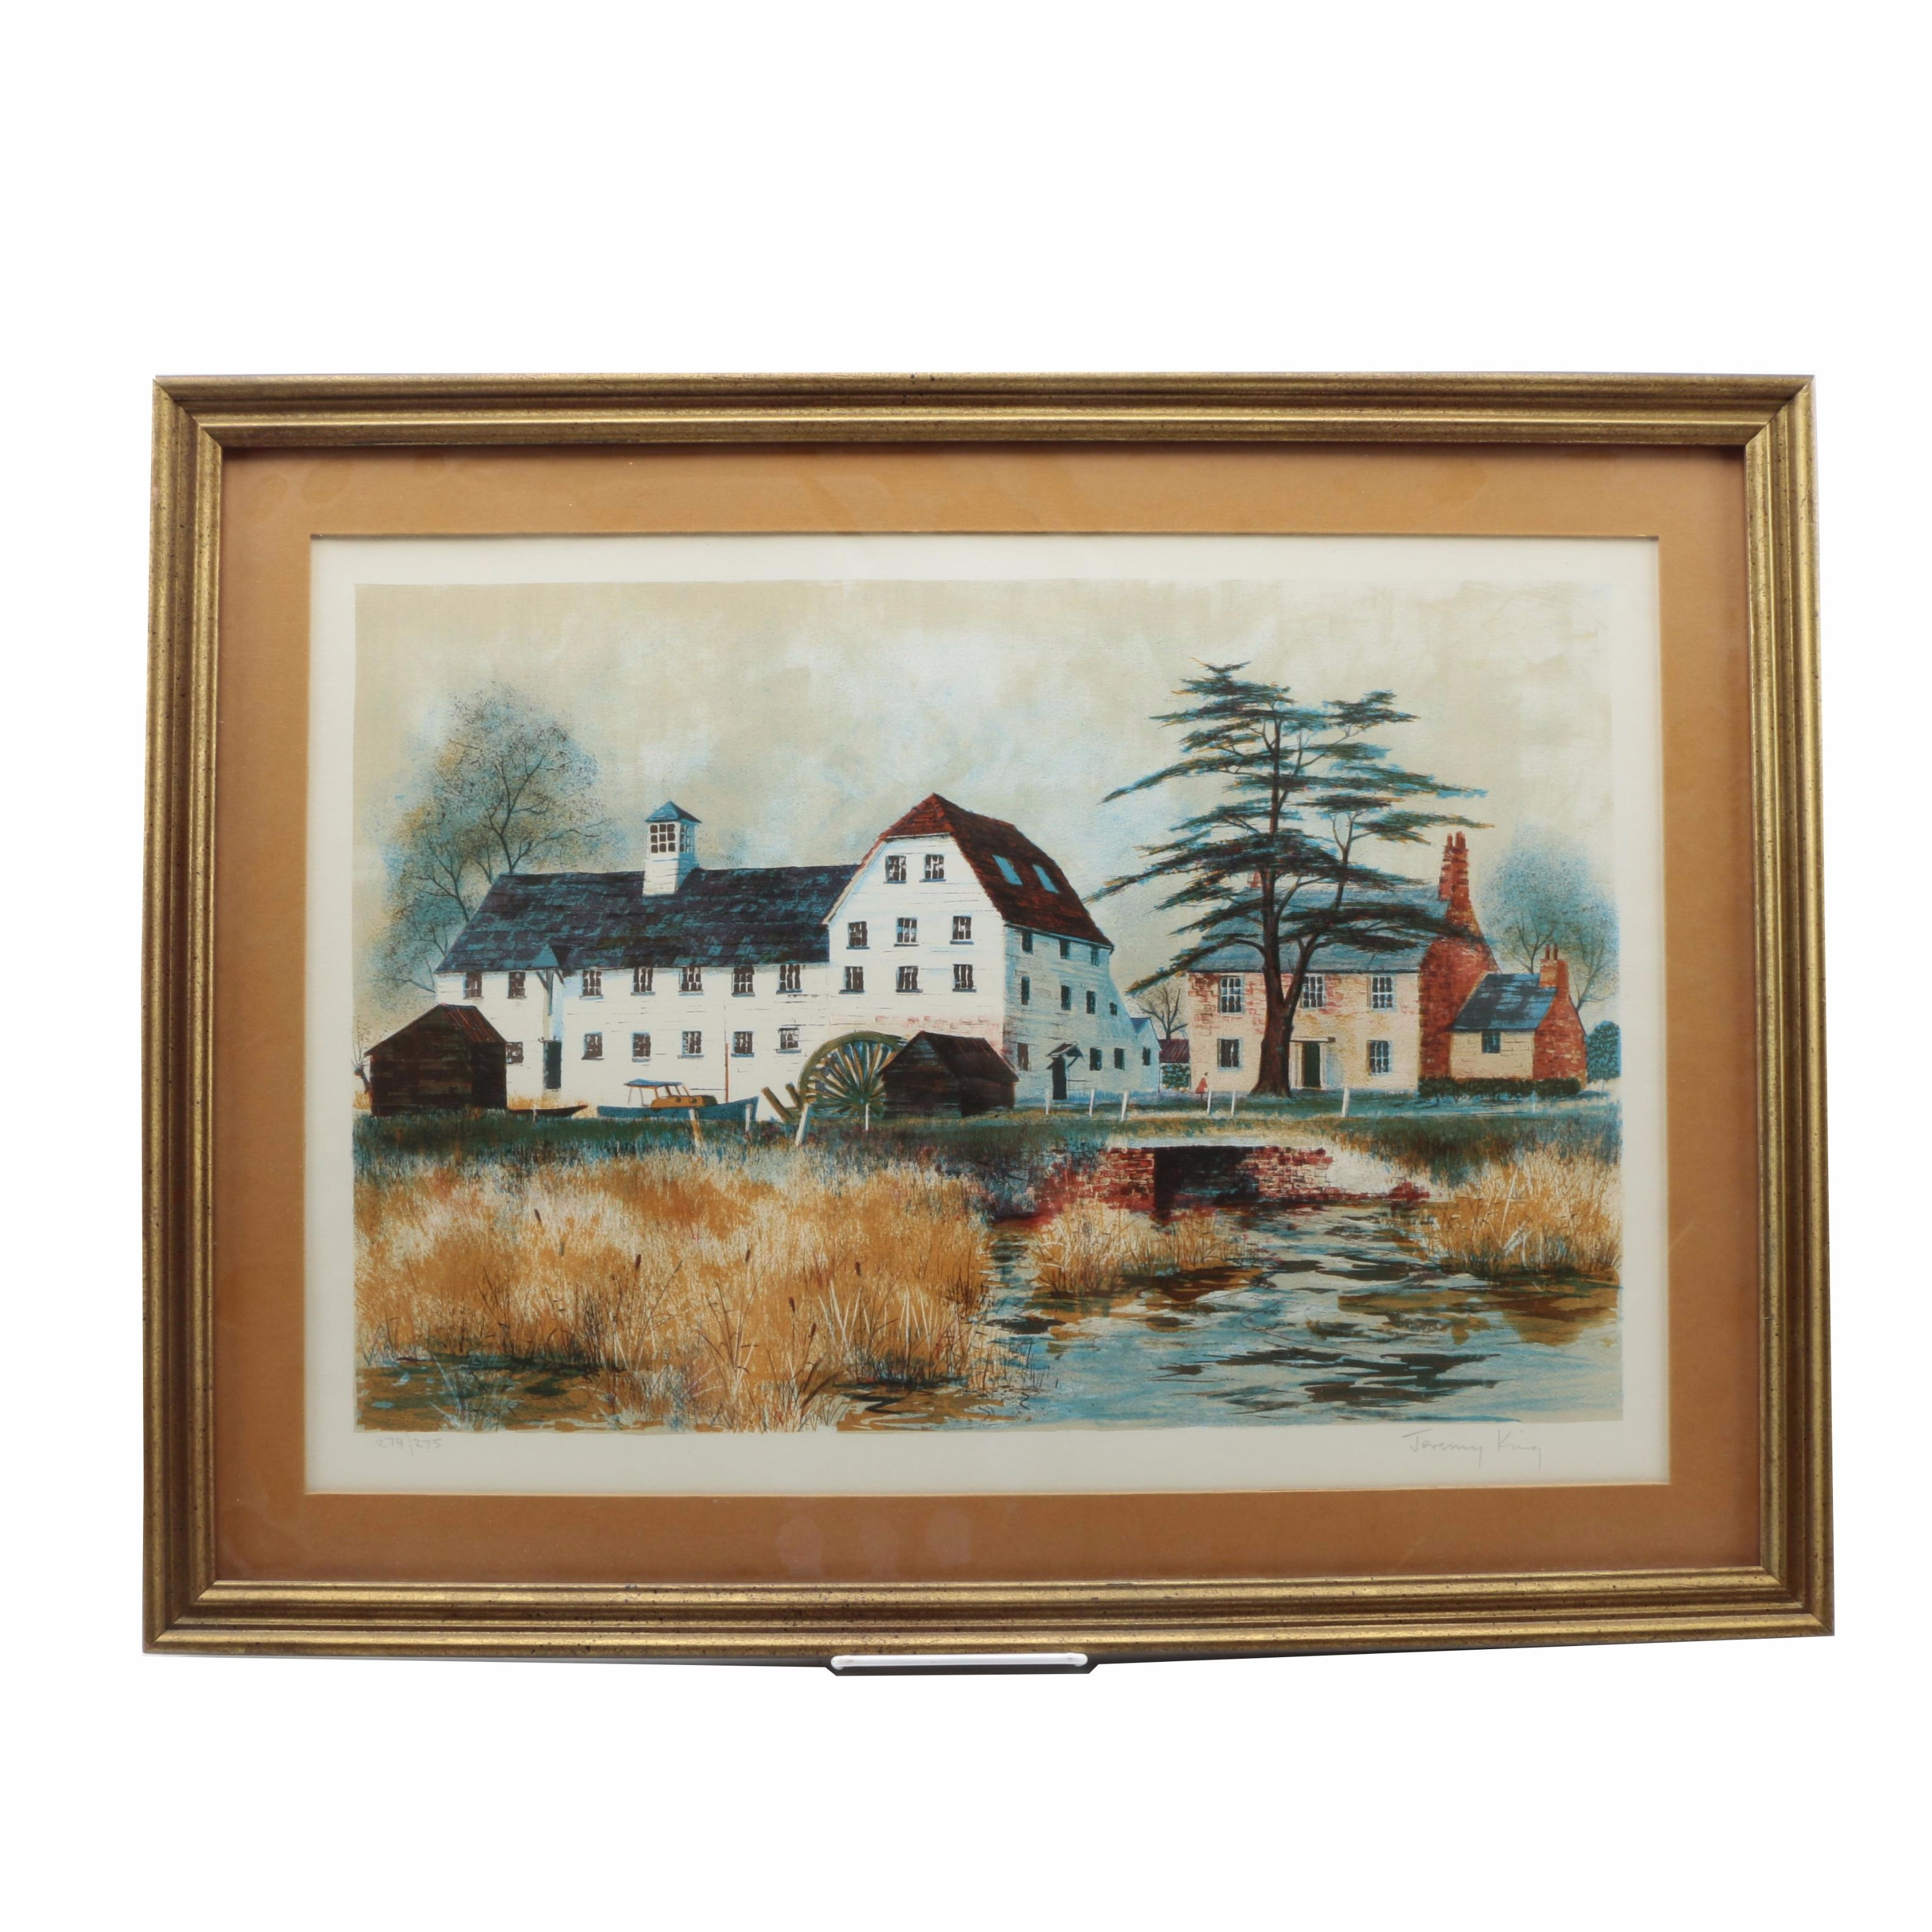 Jeremy King Limited Edition Lithograph of English Countryside